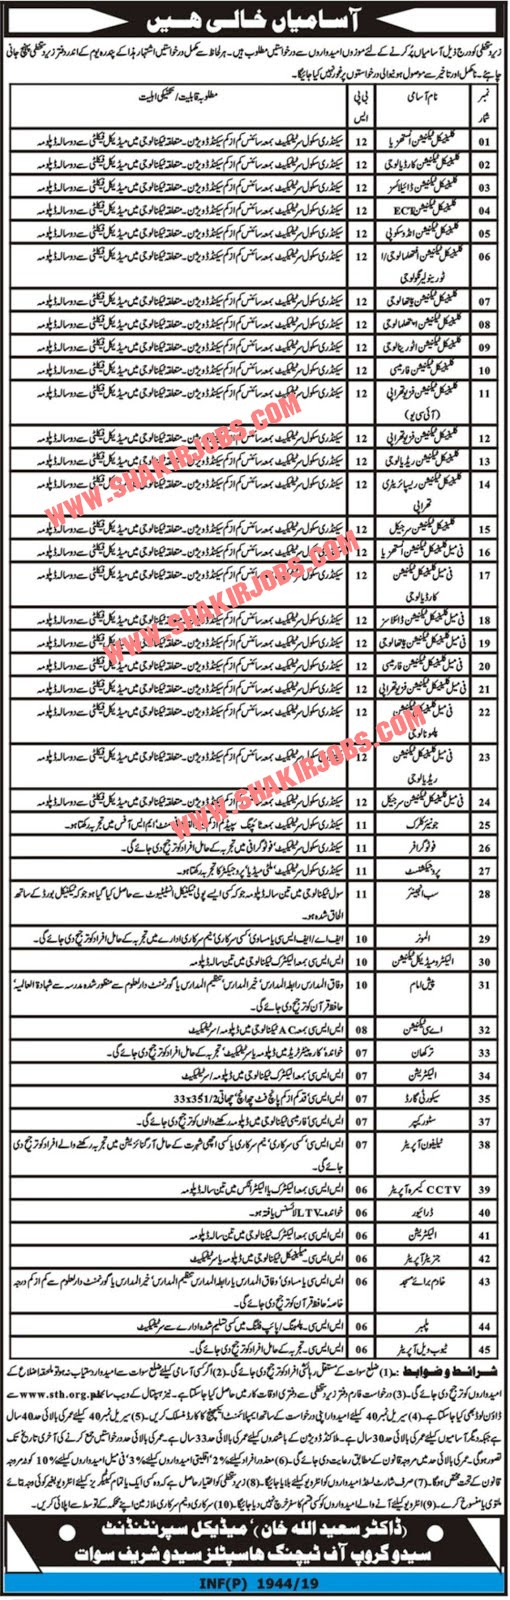 300+ Jobs In Hospital-New Health Department Jobs In Pakistan